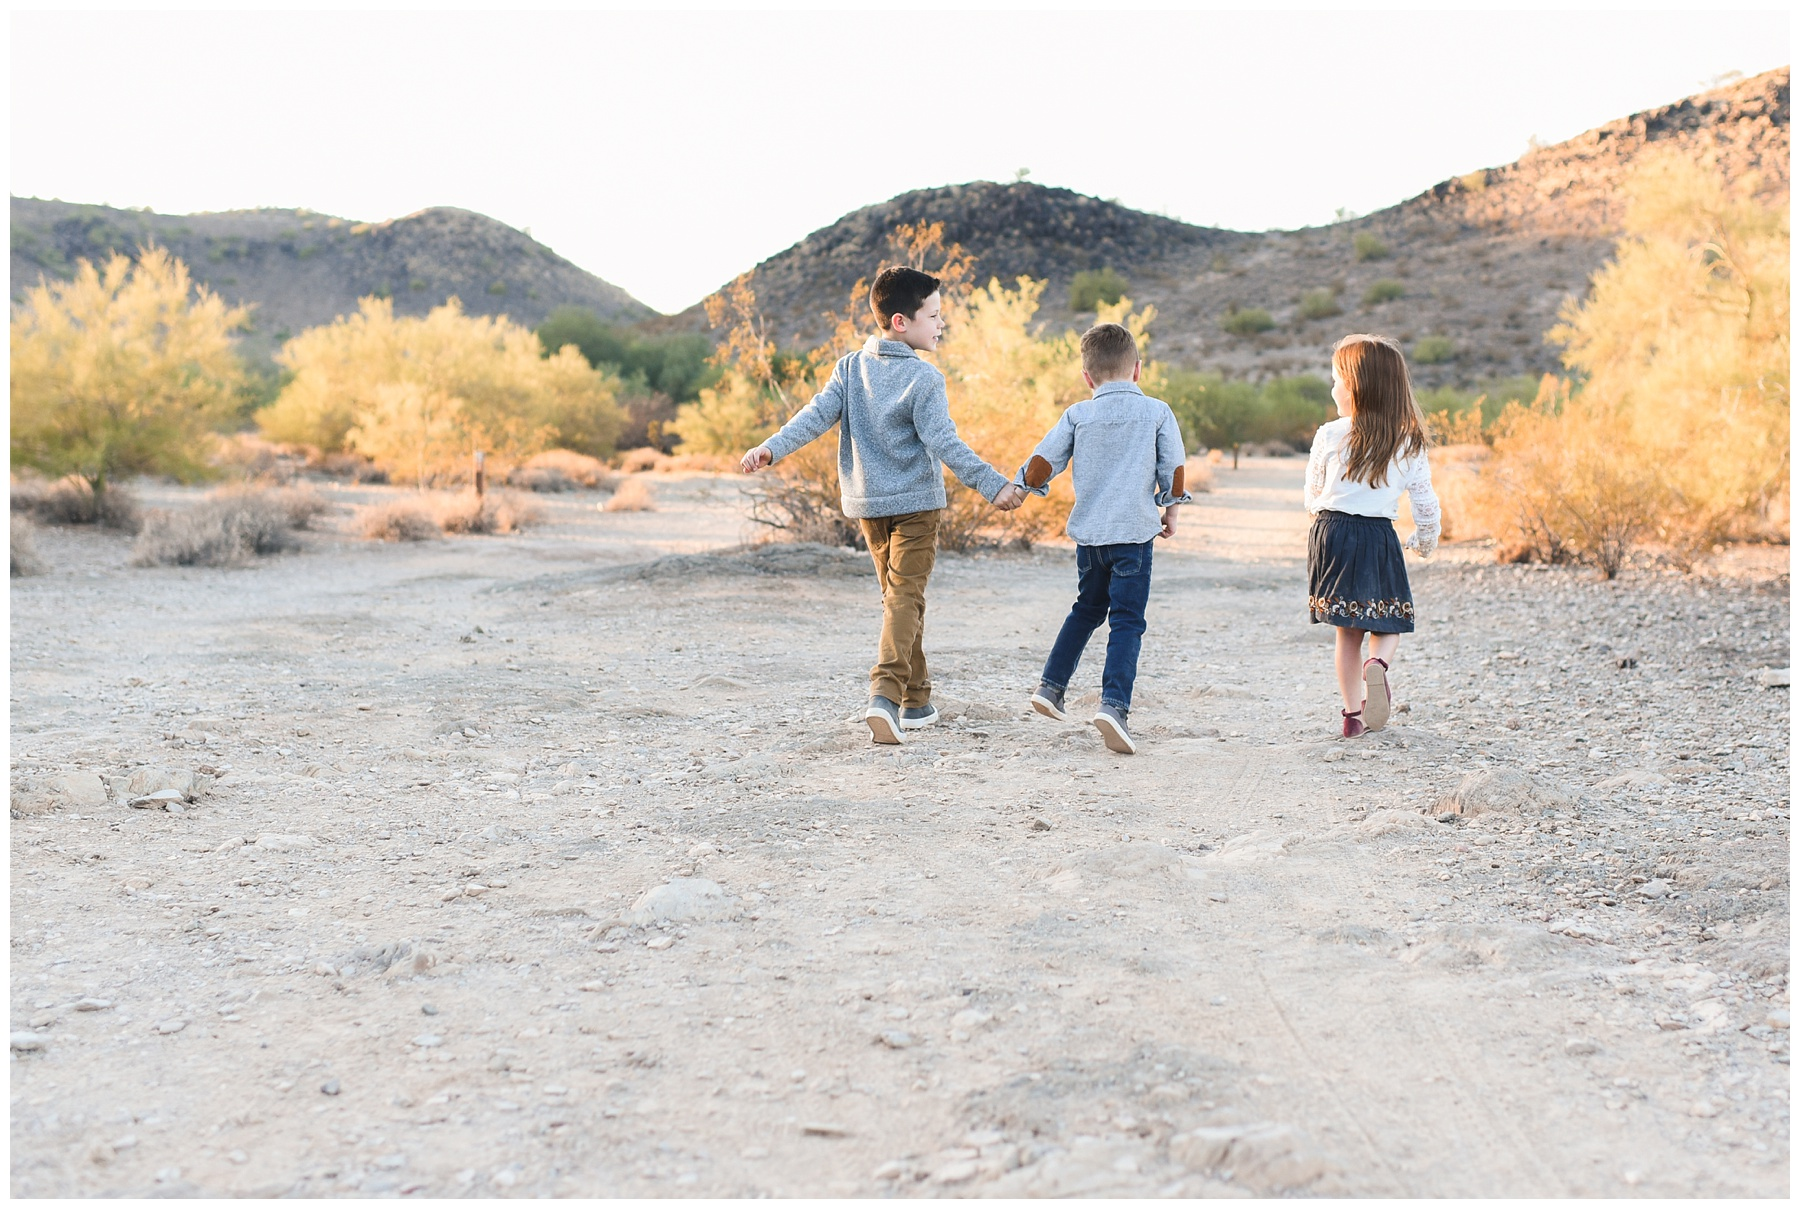 Kids skipping away | Phoenix Lifestyle Family Portraits